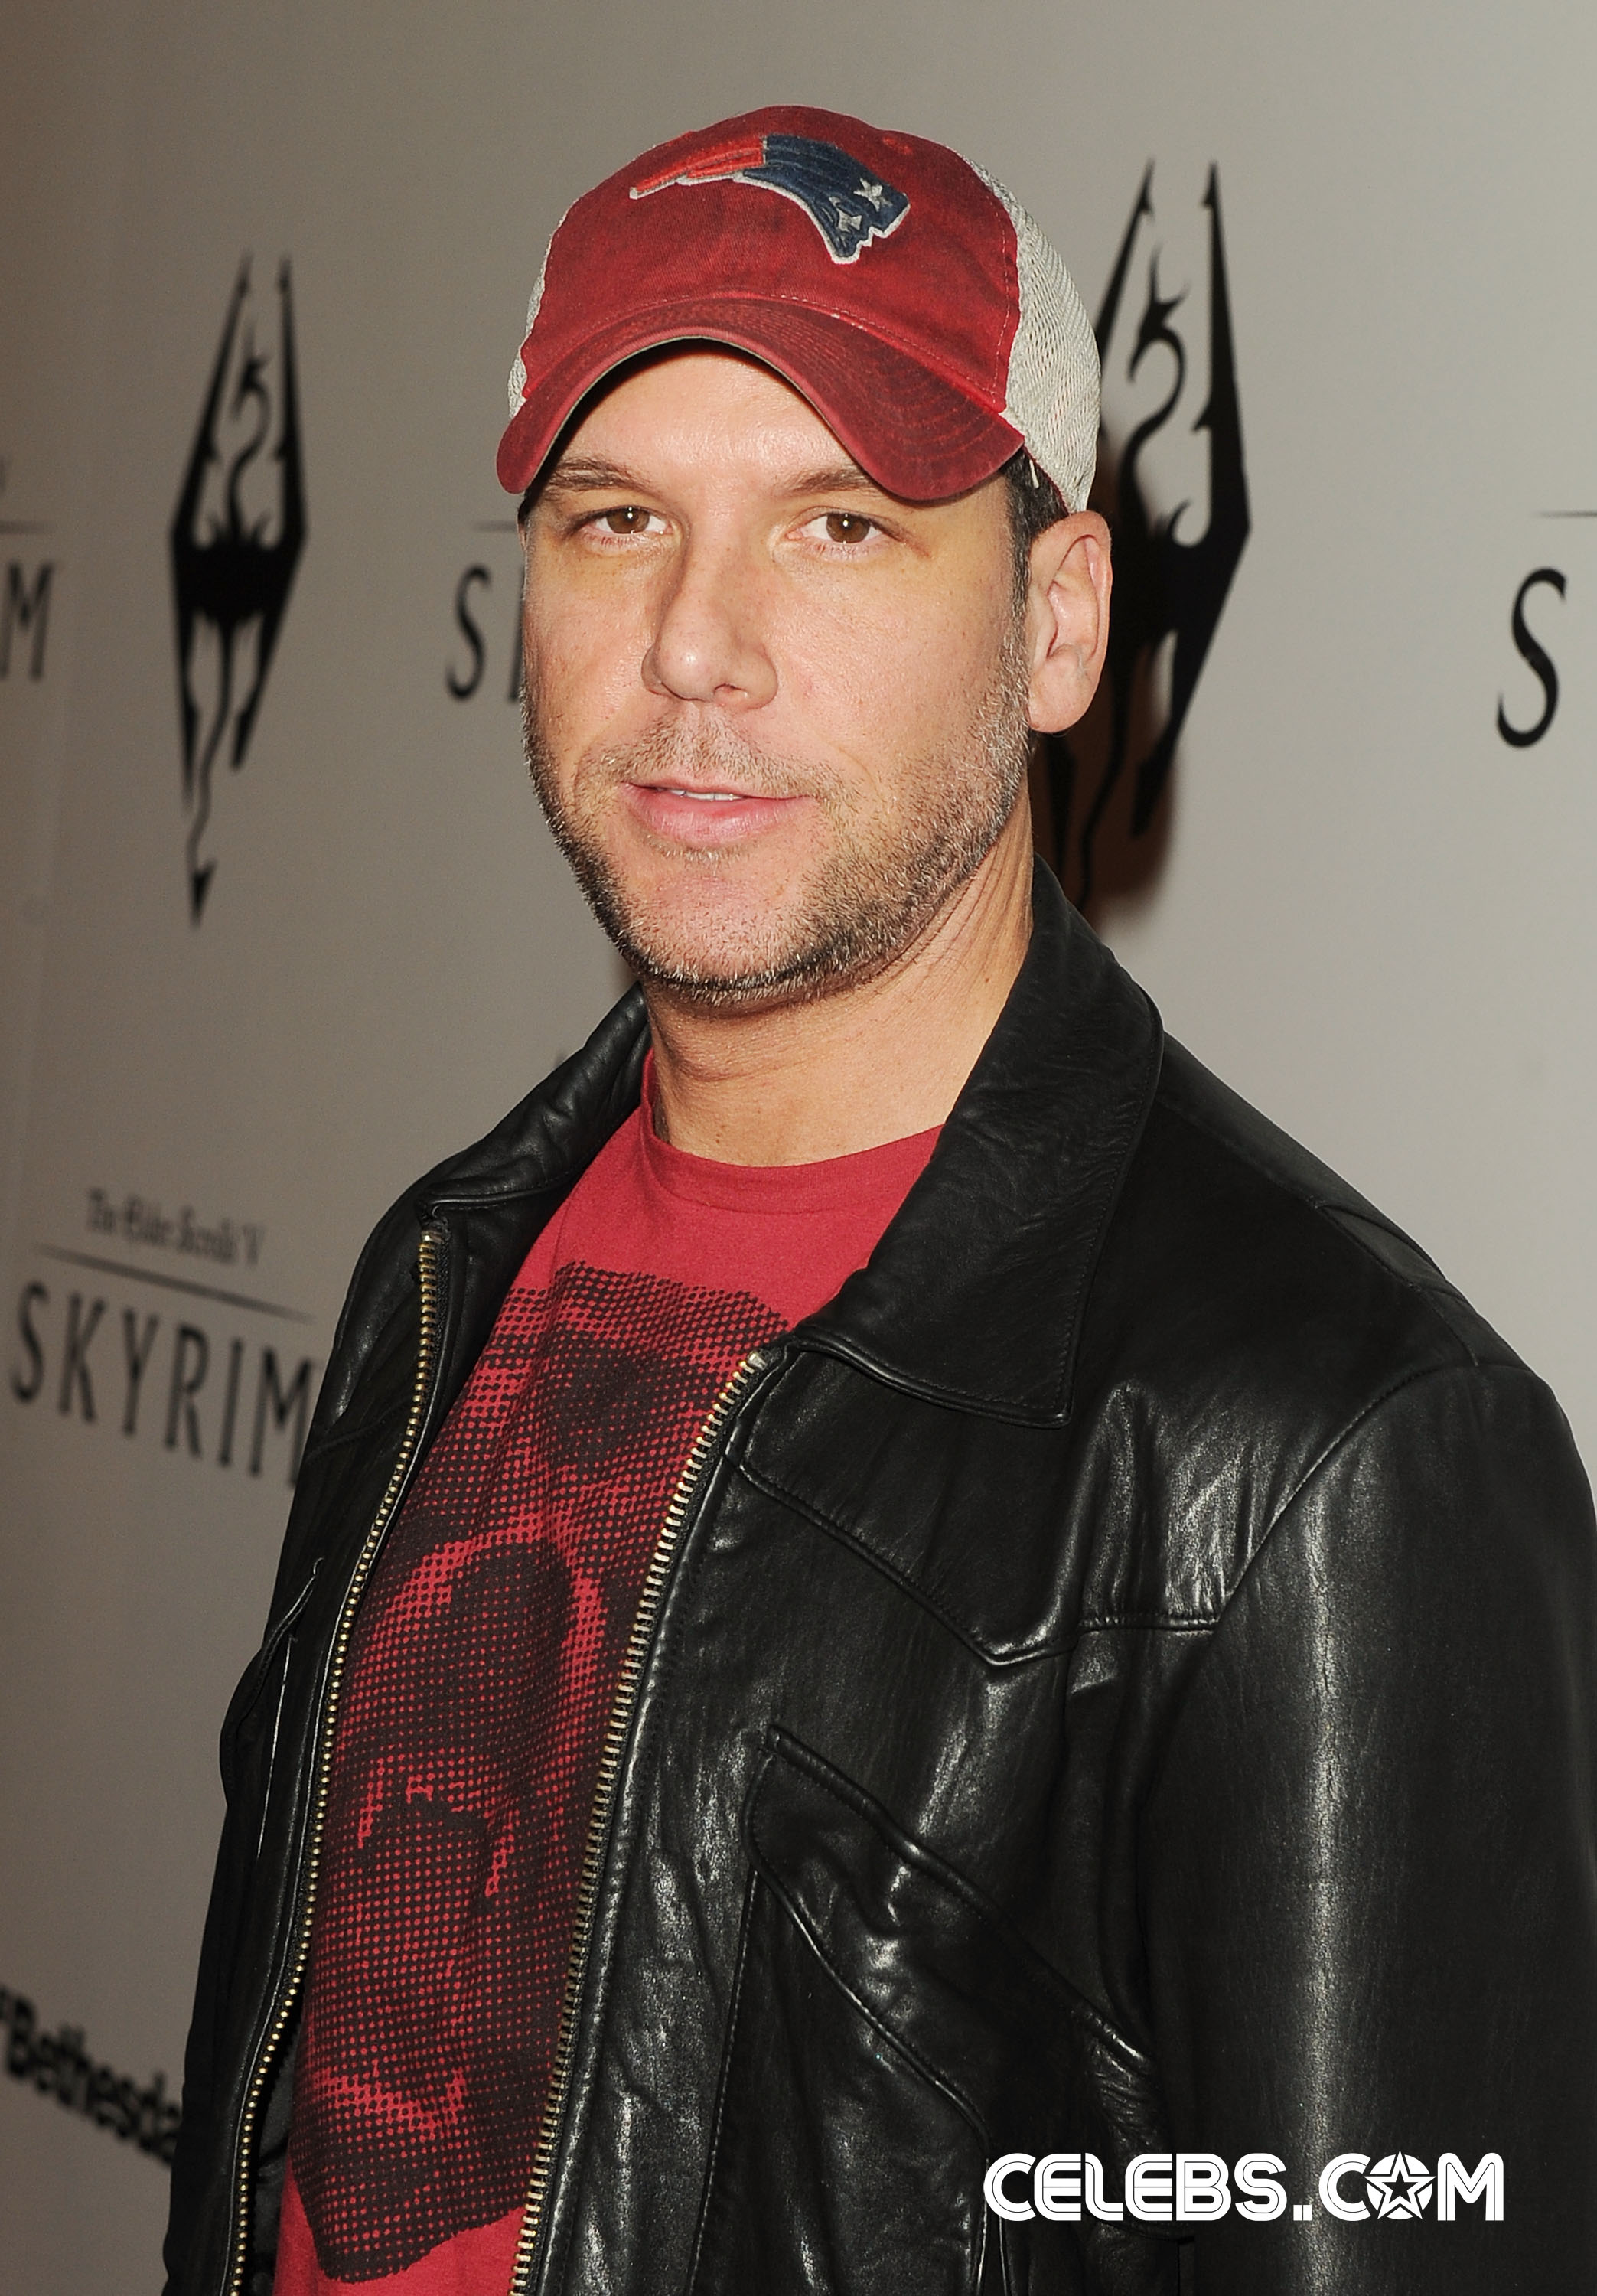 Diary Top Model Dane Cook   New Photos 2087x3000